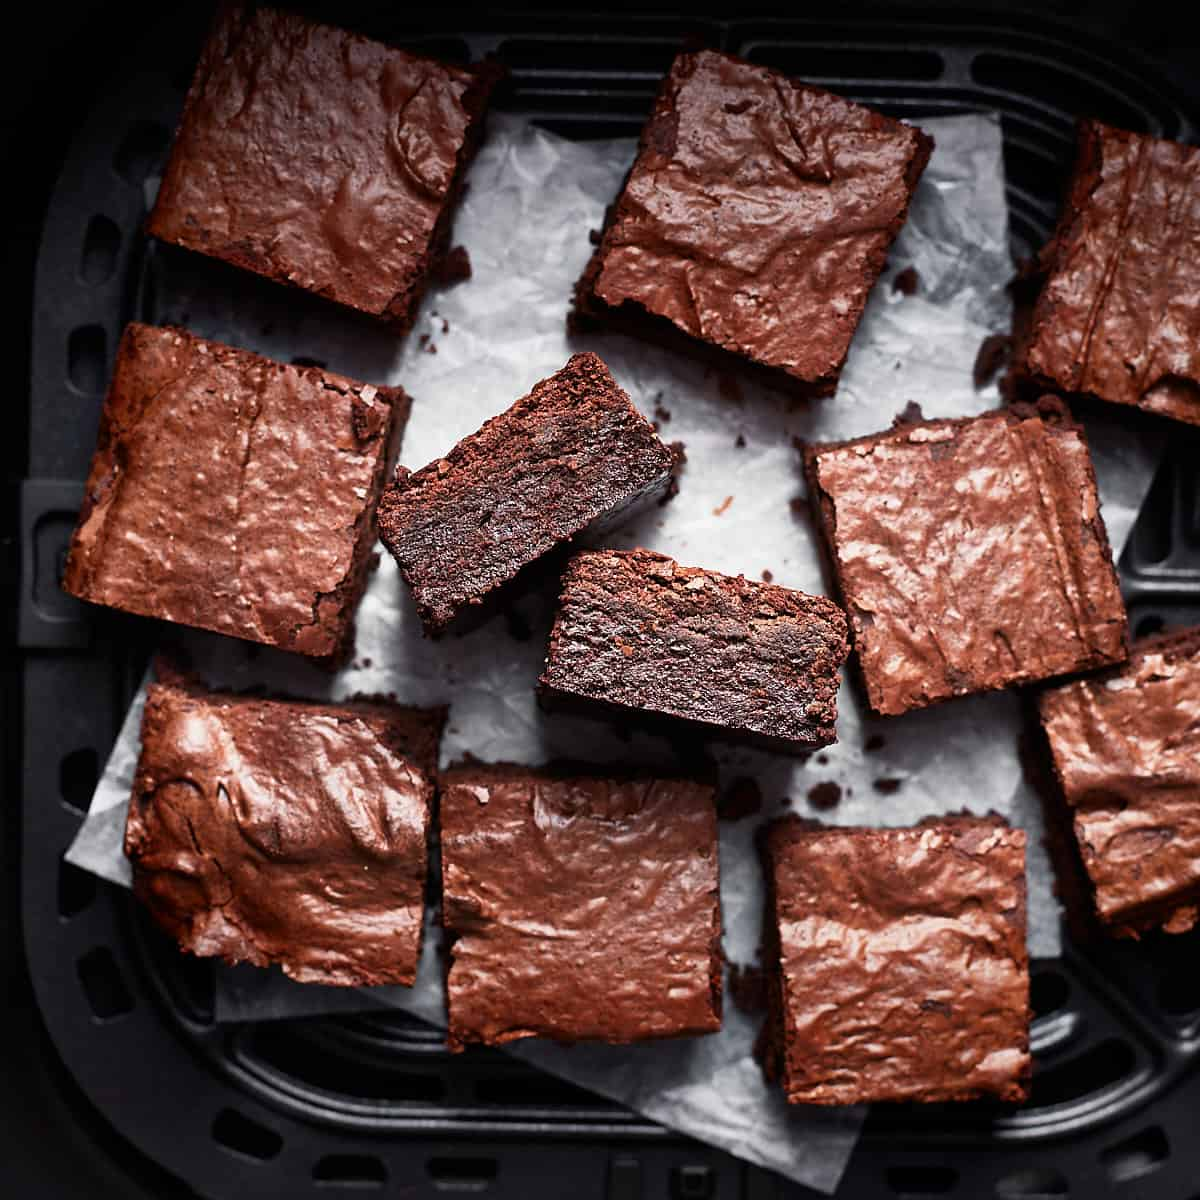 Sliced brownies on a white paper